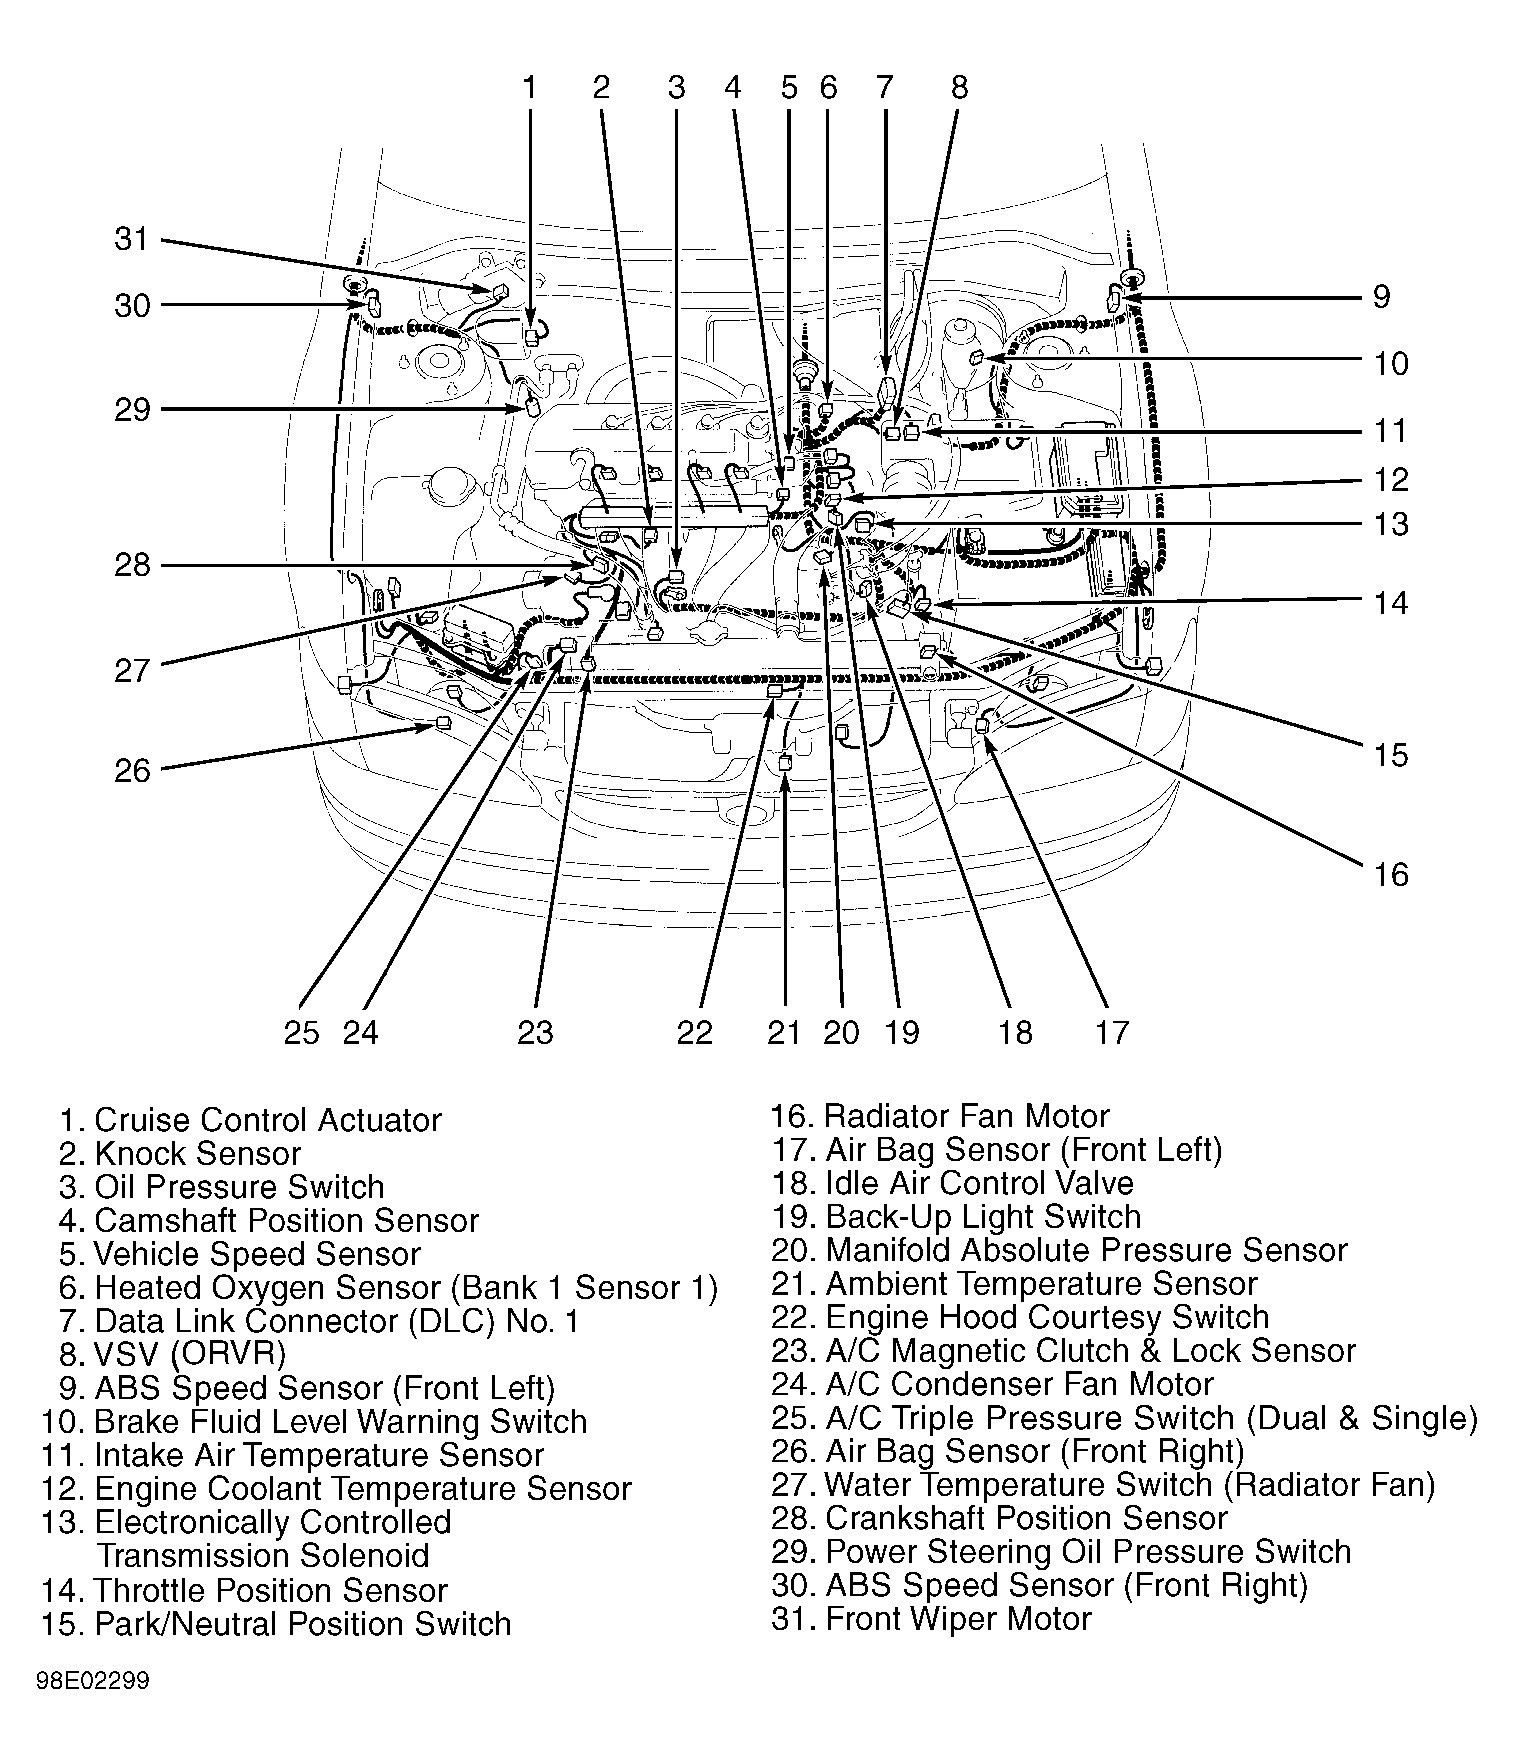 94 toyota Corolla Engine Diagram 1997 toyota Corolla Engine Diagram Wiring Diagram Paper Of 94 toyota Corolla Engine Diagram